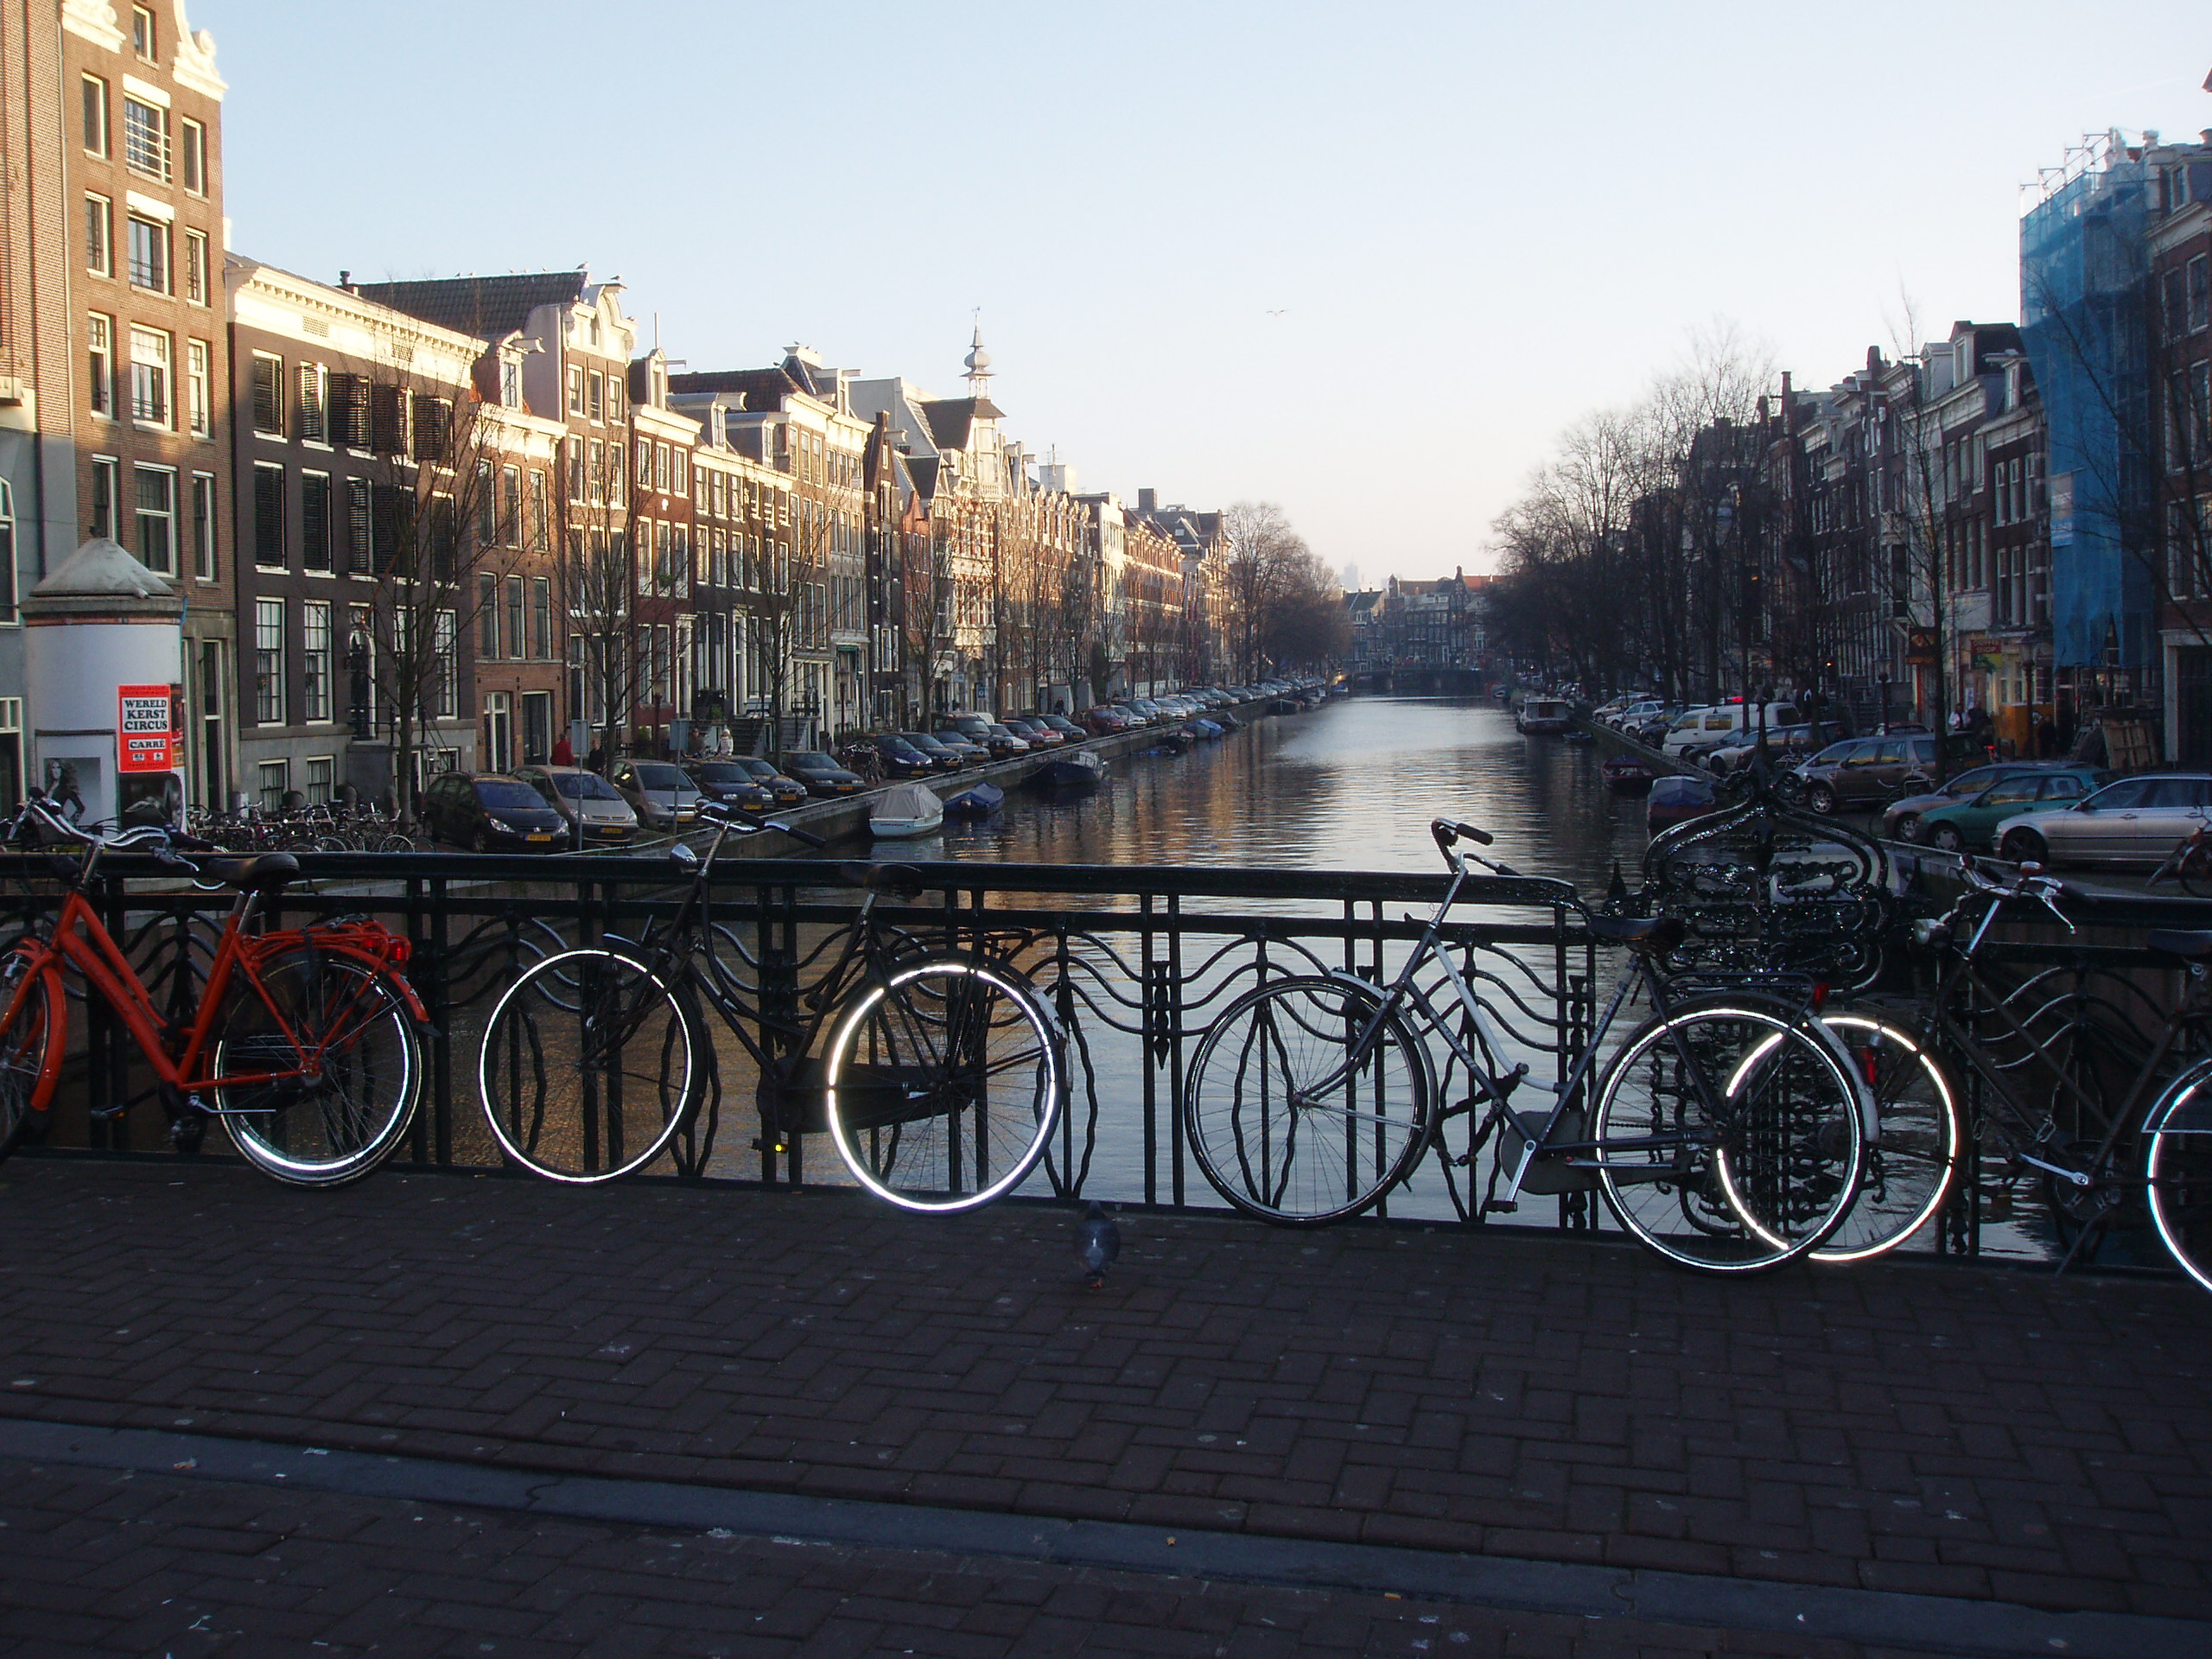 Amsterdam (Kind Of a True Story)